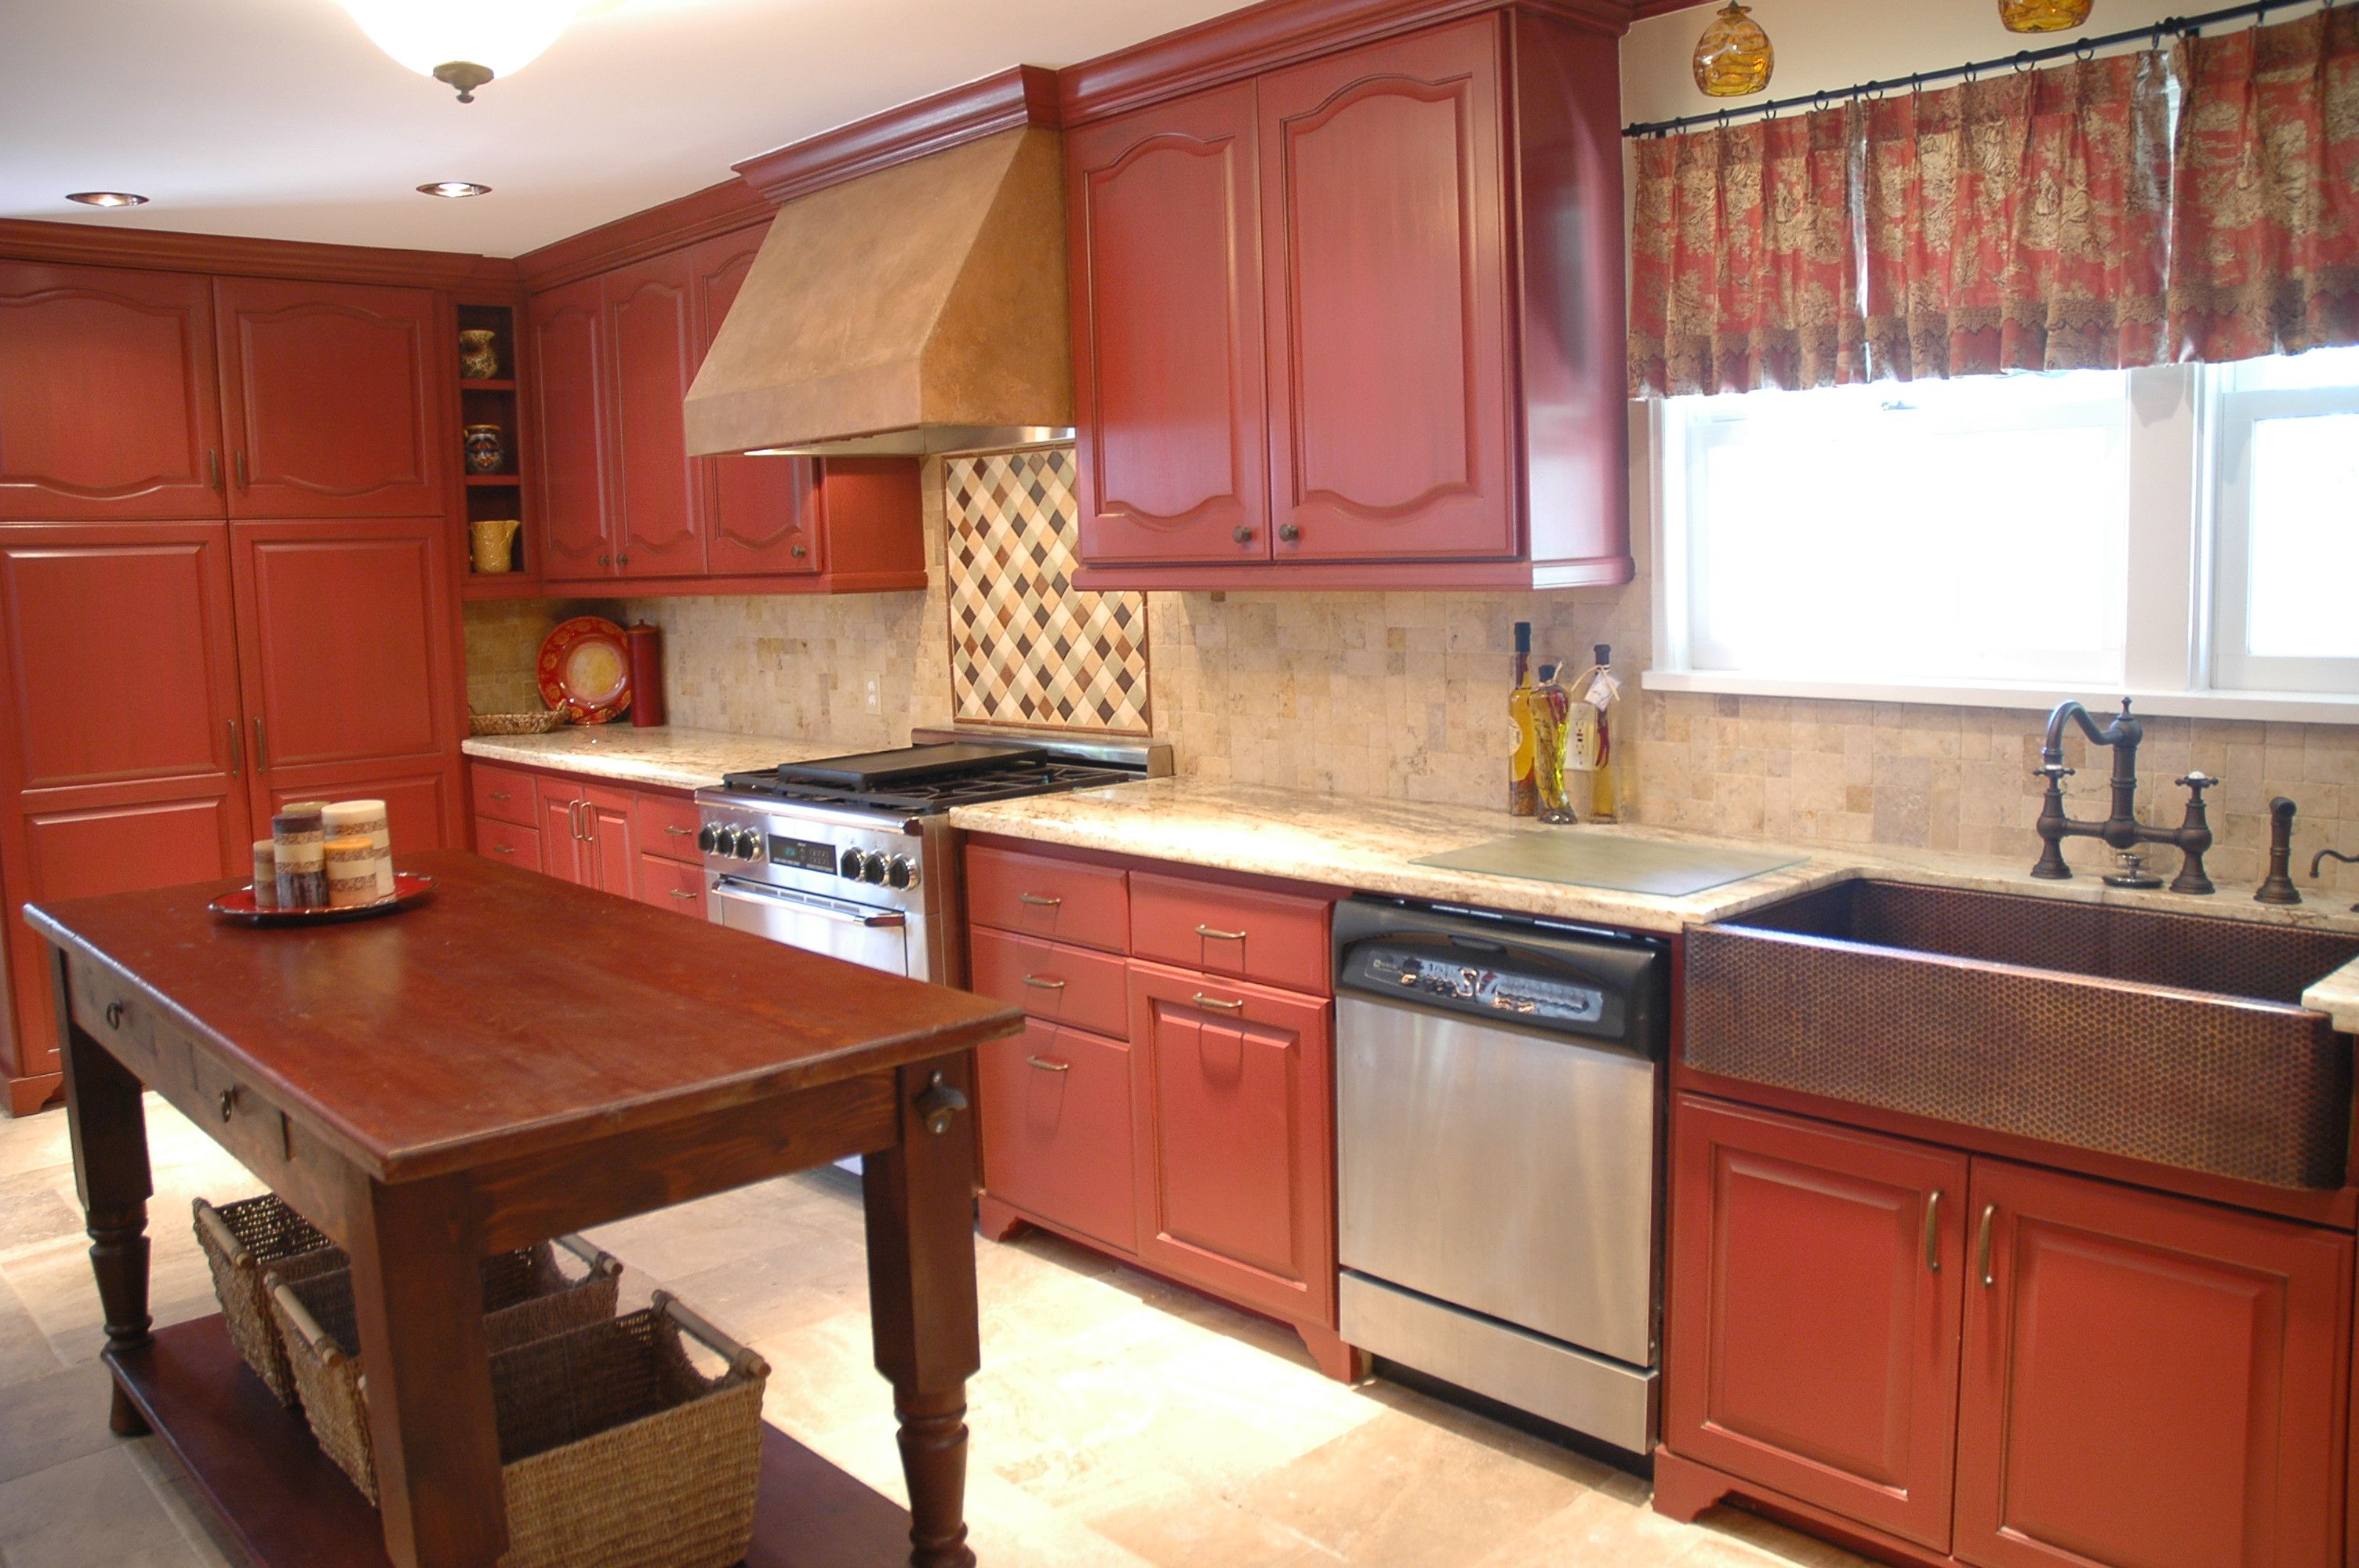 Love The Barn Red Cabinets With A Tobacco Glaze My Fabulous Faux Finisher Can Be Found At Www Guggenheimdesigns Co Tuscan Kitchen Red Cabinets Kitchen Design